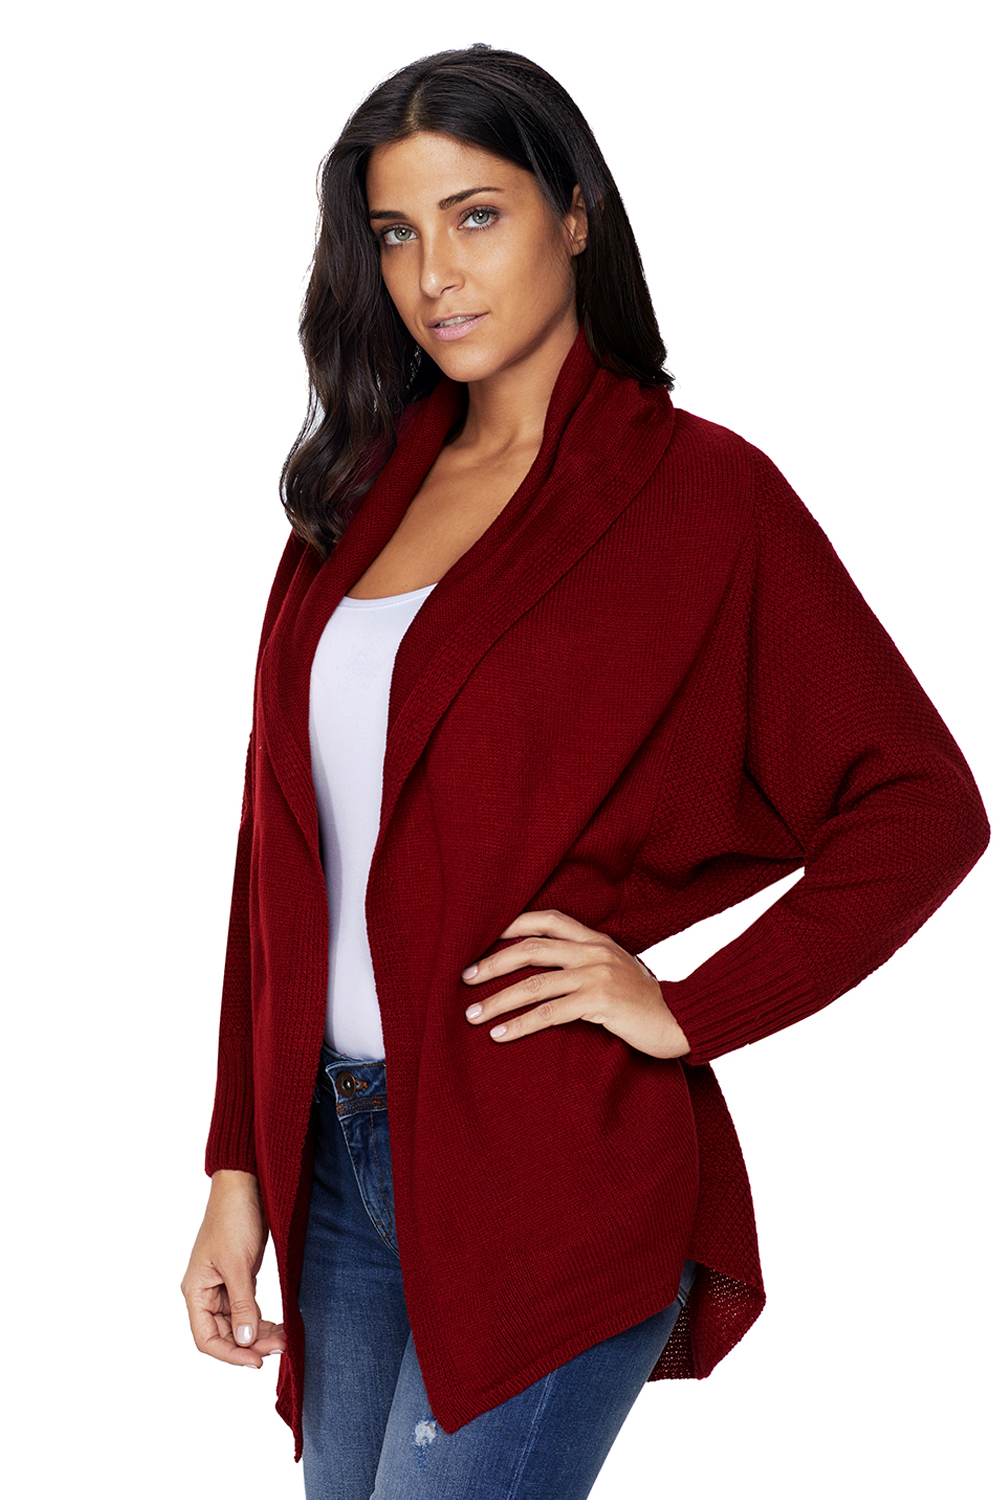 563710f4fc Burgundy chunky knit open front dolman cardigan womens autumn winter ...